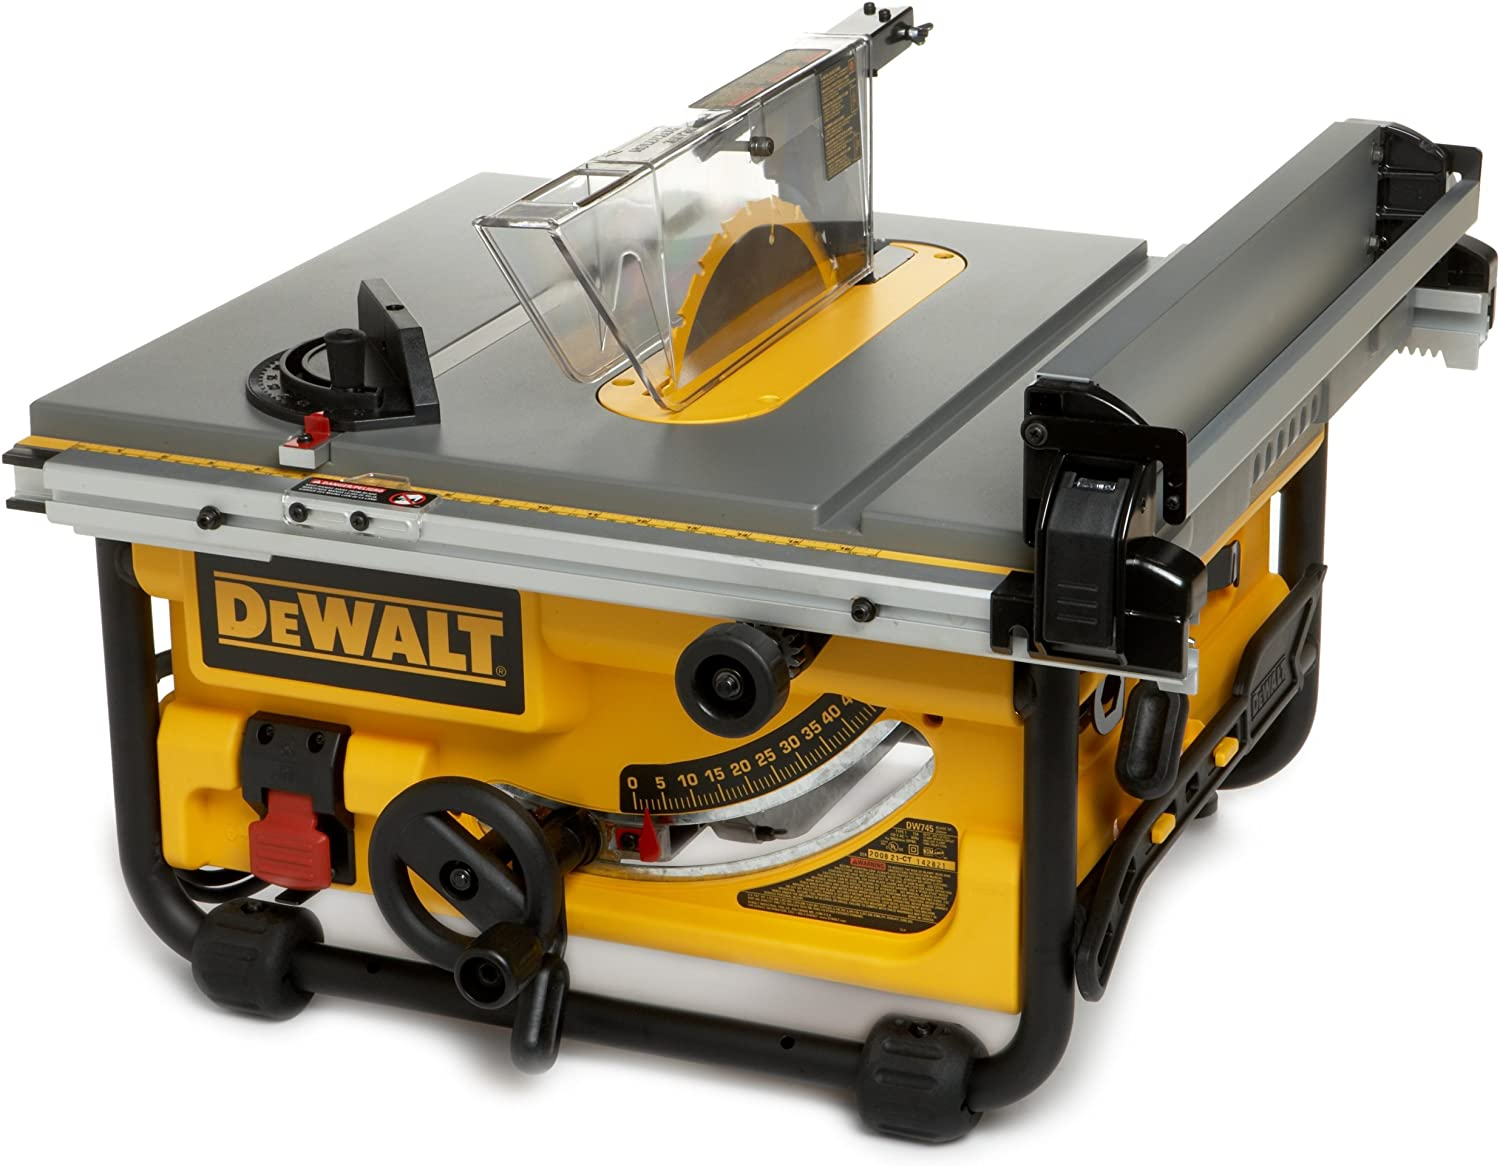 DEWALT DW745R 10-Inch Table Saw Certified Refurbished